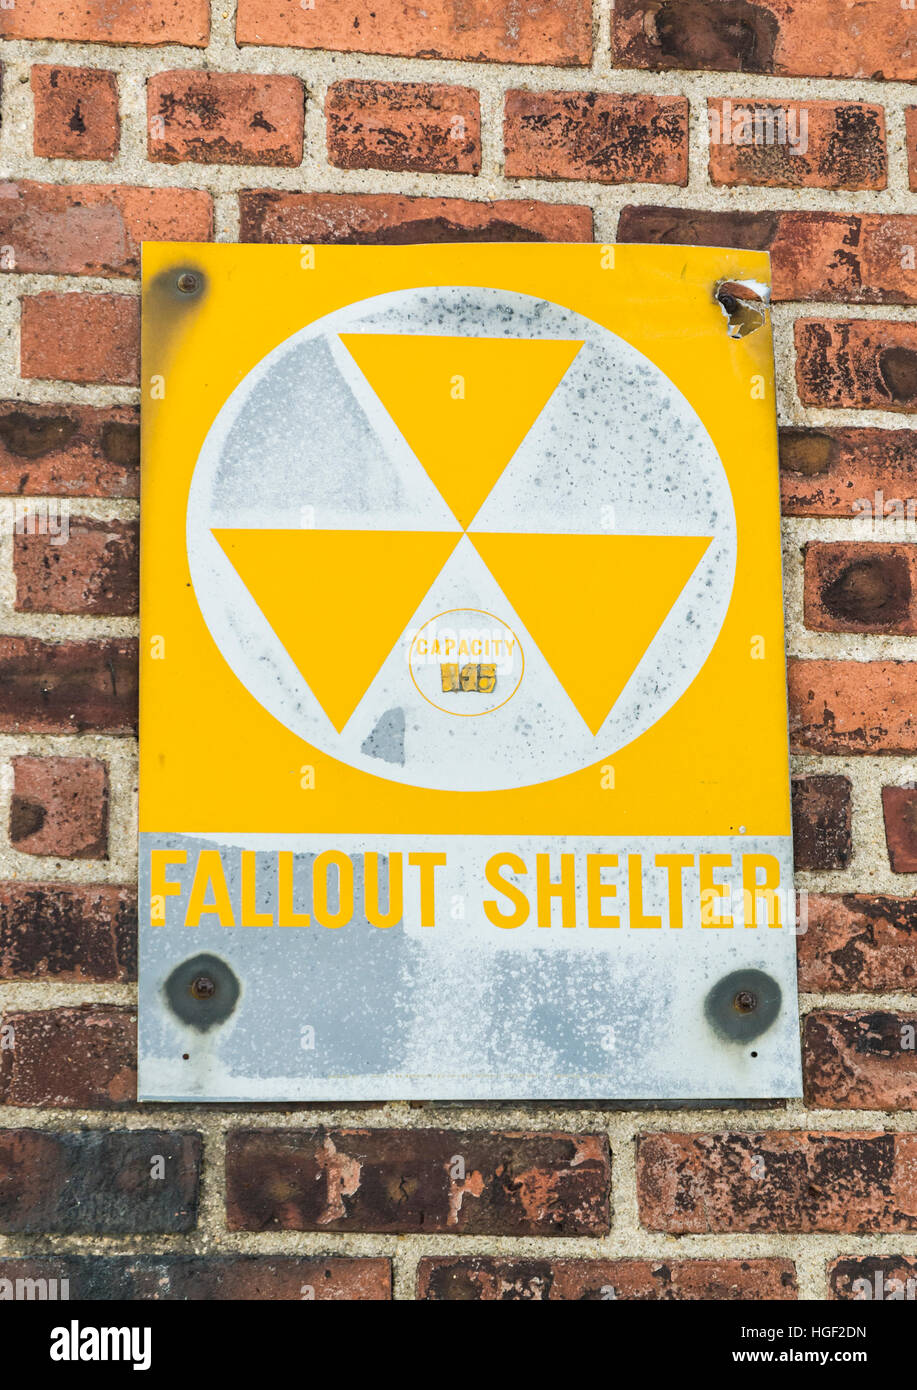 Yellow nuclear radioactive fallout shelter sign on a brick wall, USA - Stock Photo